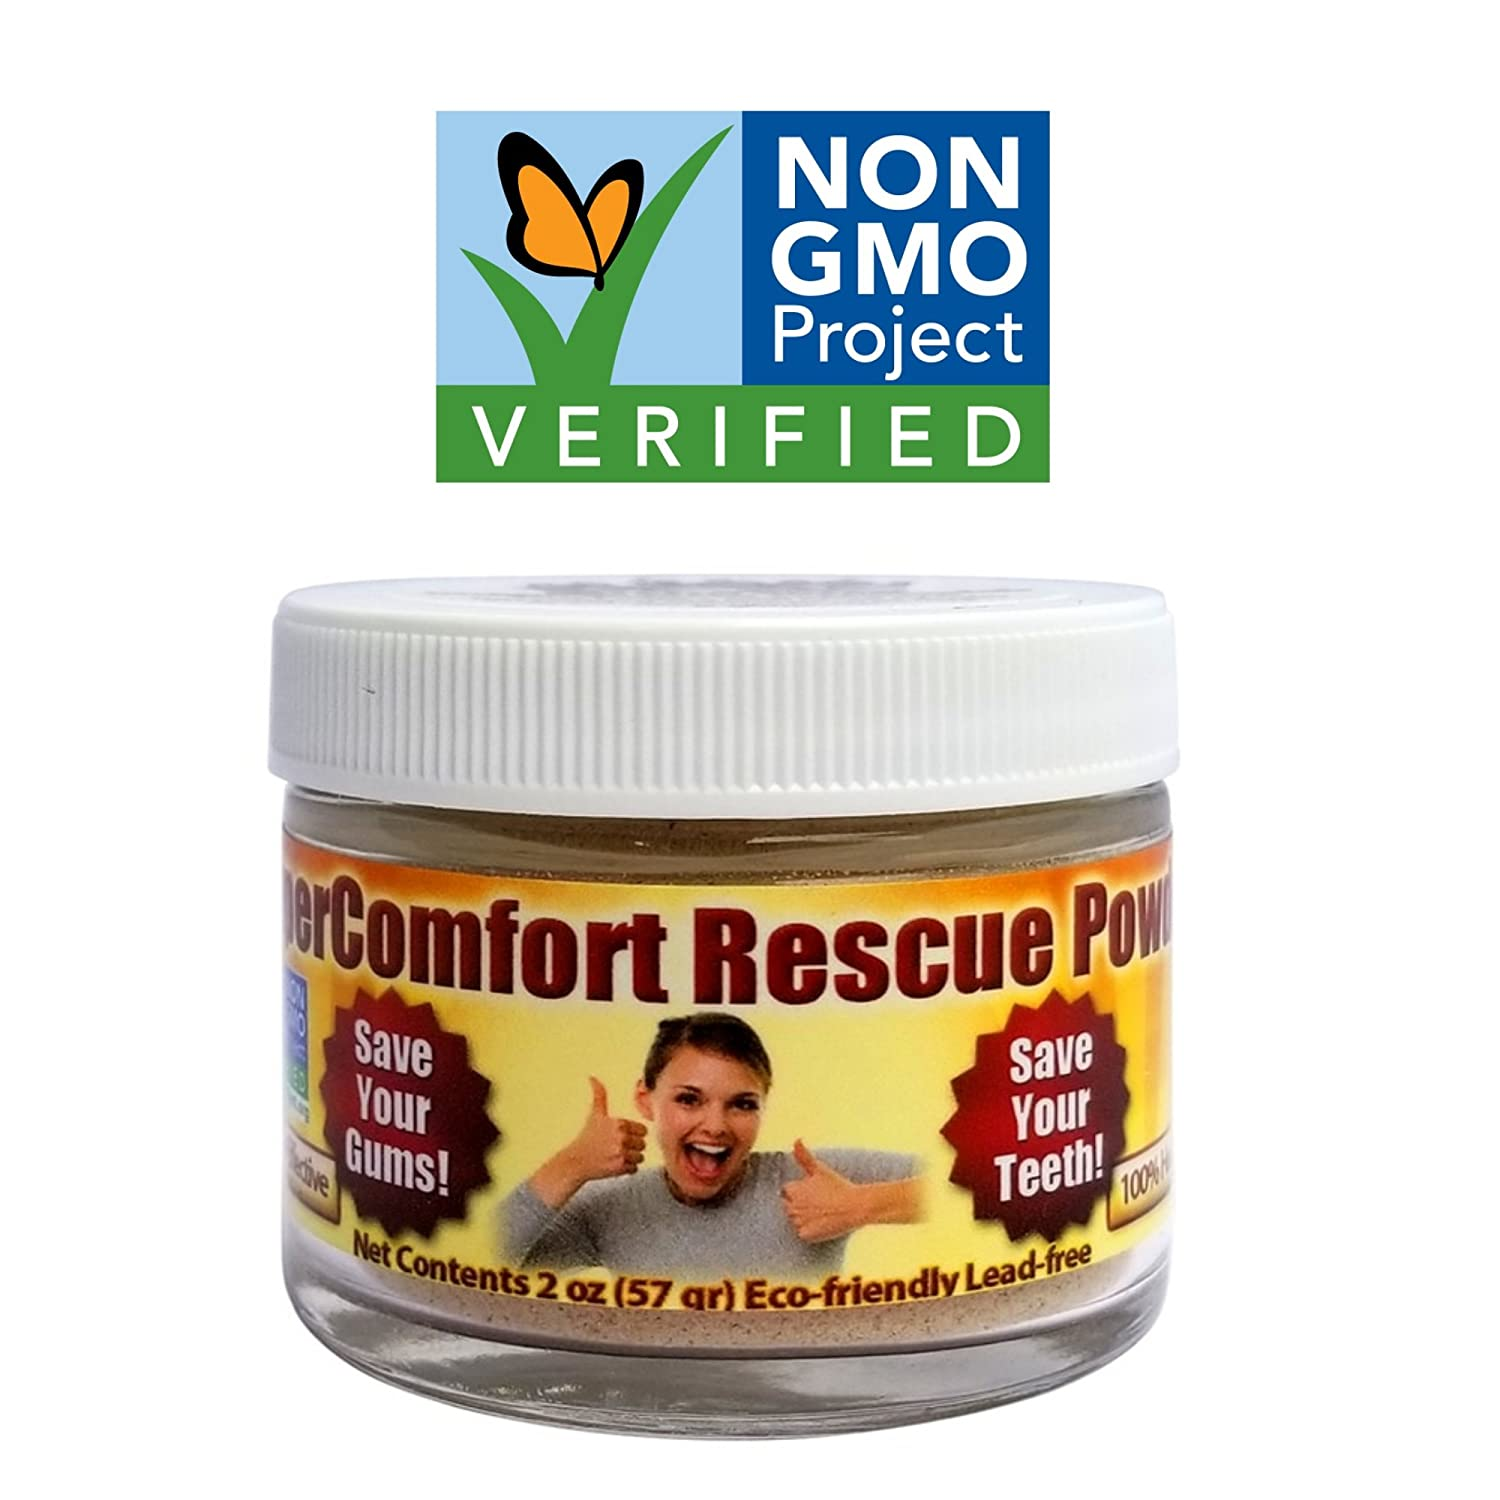 Dental RESCUE Tooth Powder - Optimize your Dental Care: Gum Disease, Gum Recession, Plaque Build-up, Toothache, Bad Breath, Gingivitis, Root Canal, Whitening, Bleeding Gums, Sensitivity, Inflammation Anti-Aging Company